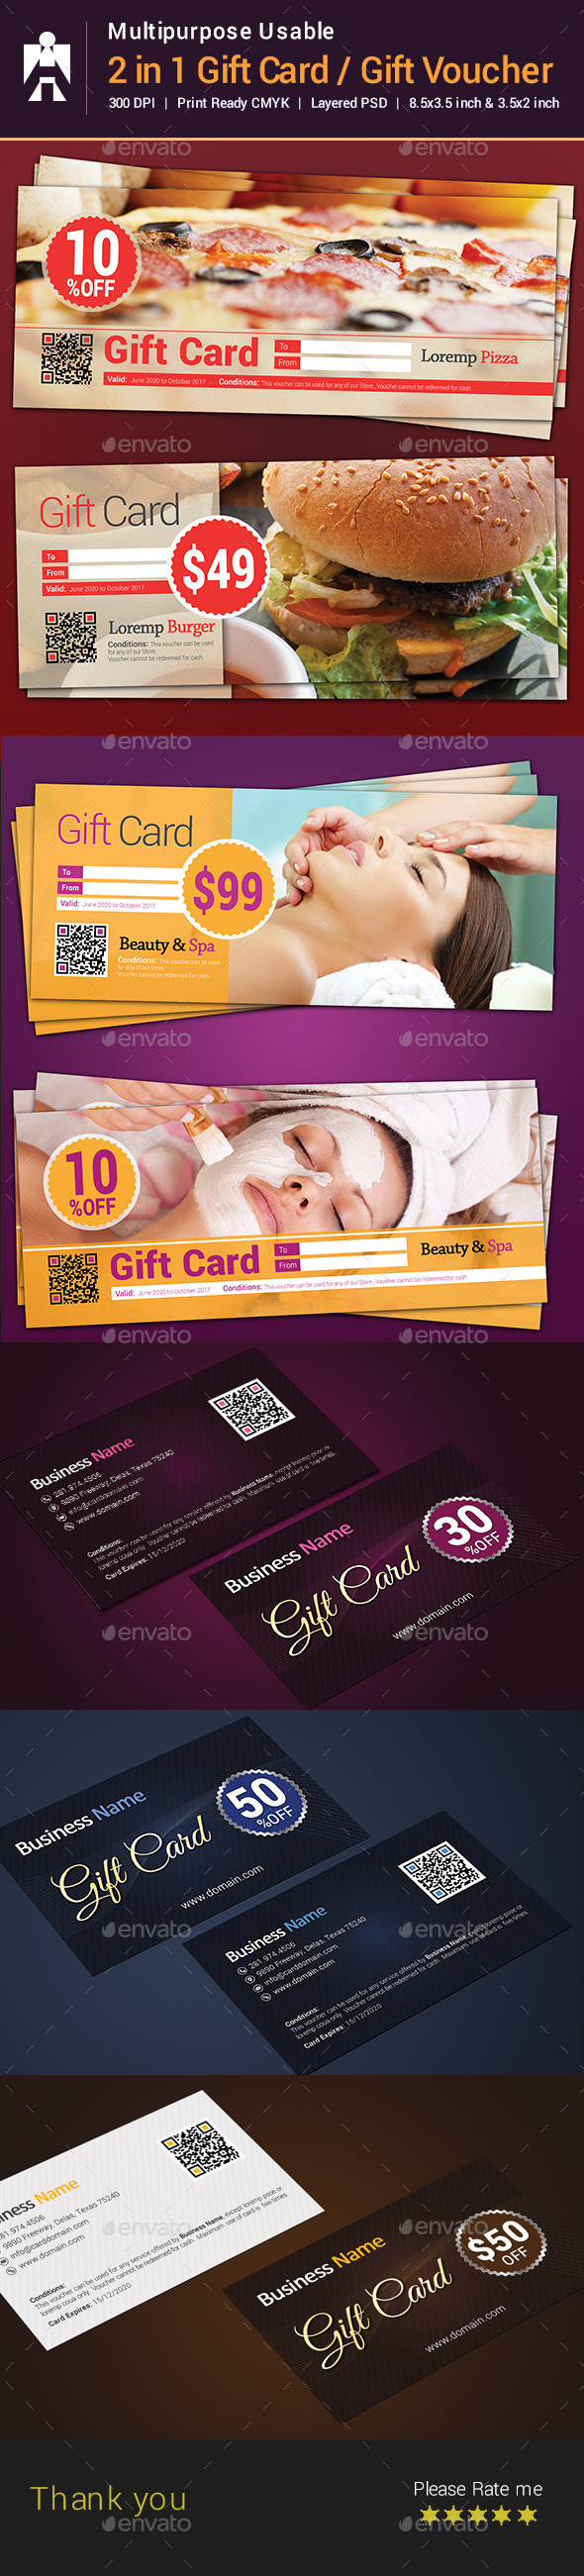 2 in 1 Gift Card / Gift Voucher - Cards & Invites Print Templates